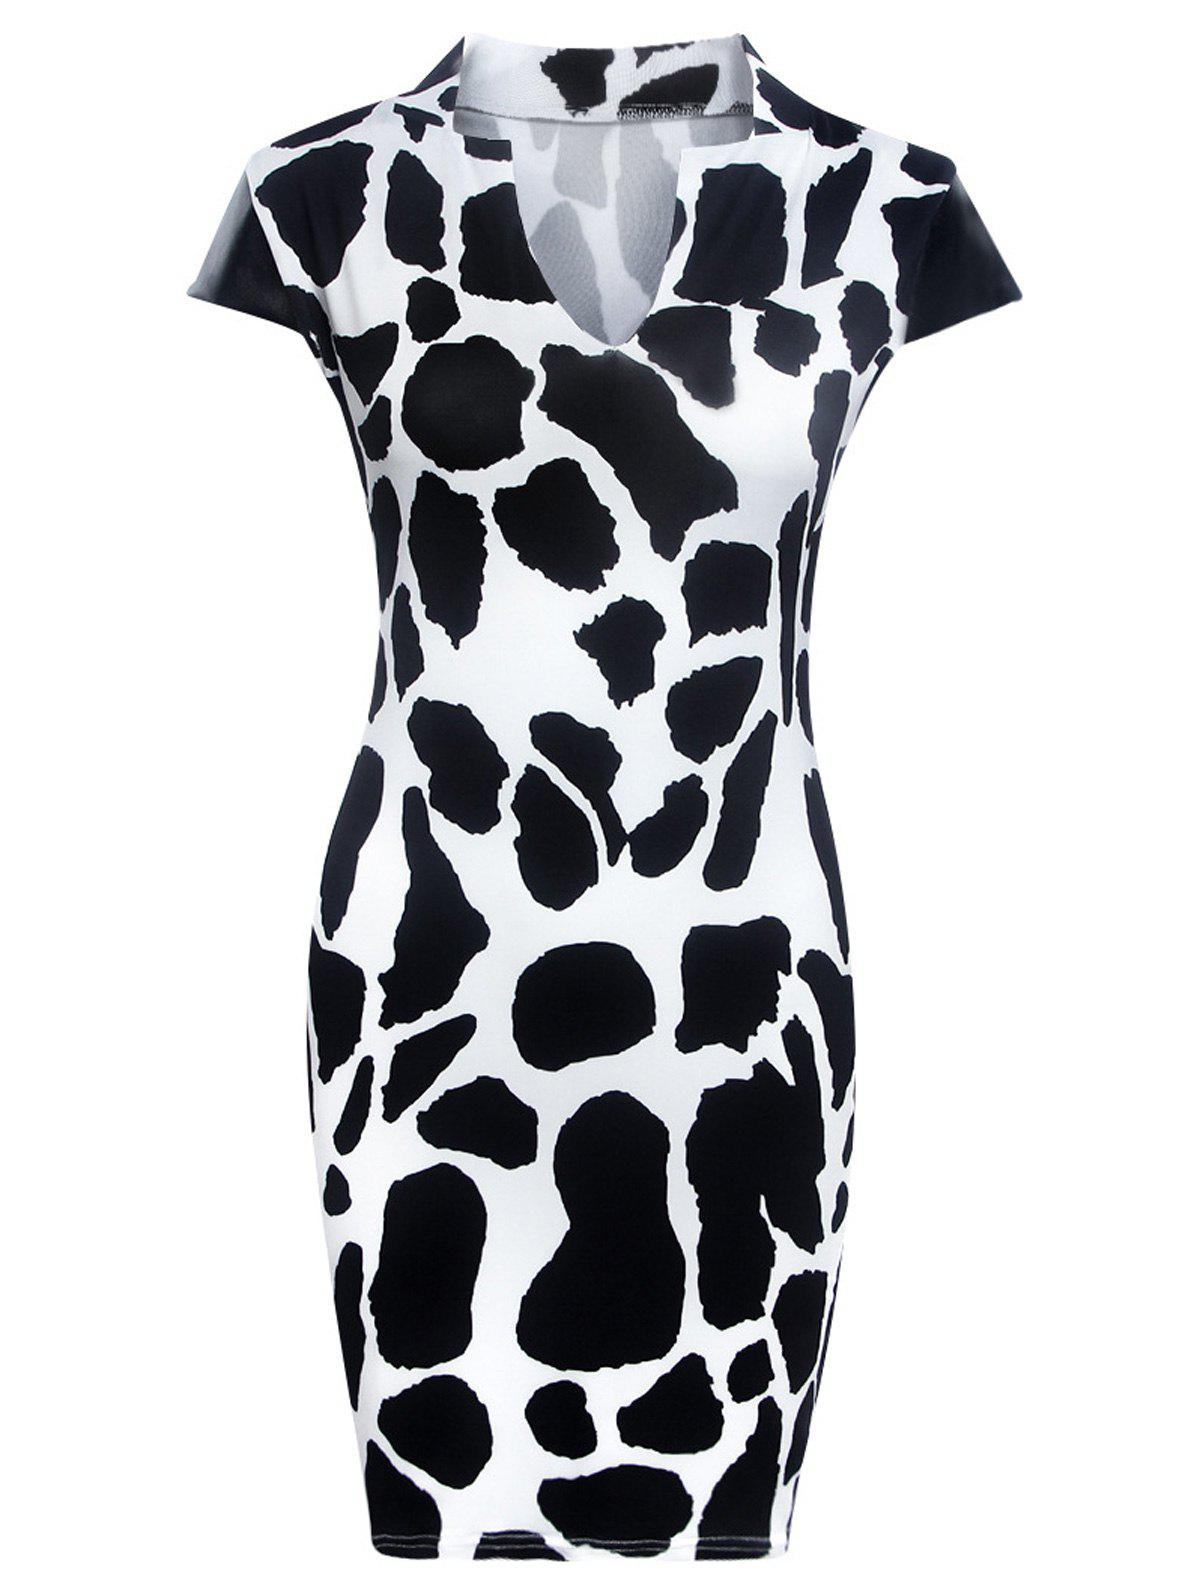 Fashionable Printed Faux Leather Spliced Skinny Women s Dress 188618903